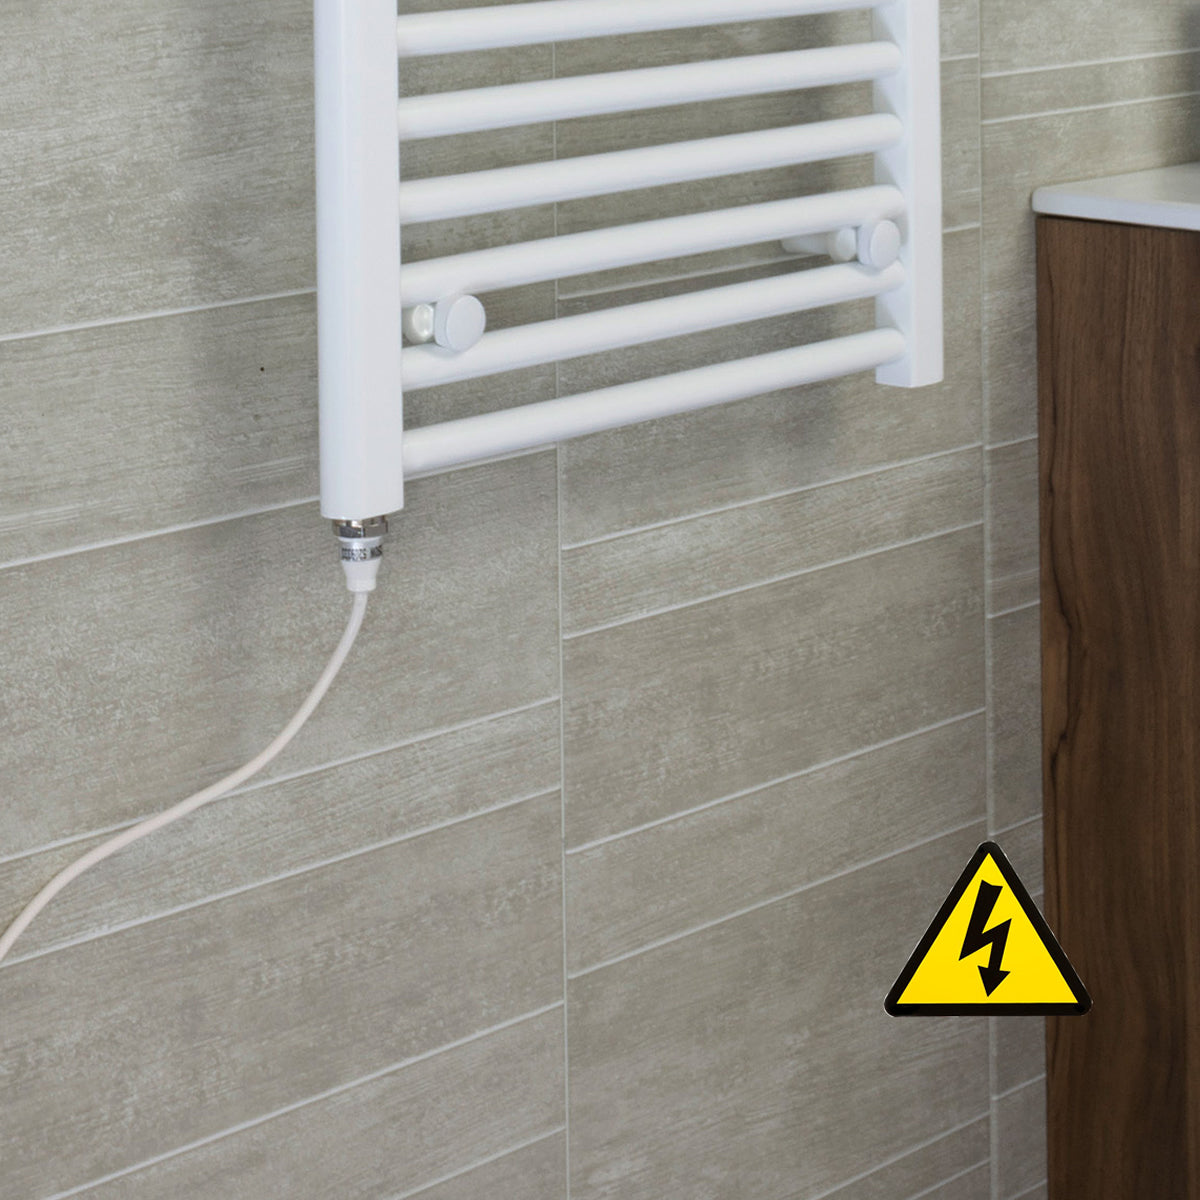 600mm Wide 600mm High Pre-Filled White Electric Towel Rail Radiator With Single Heat Element